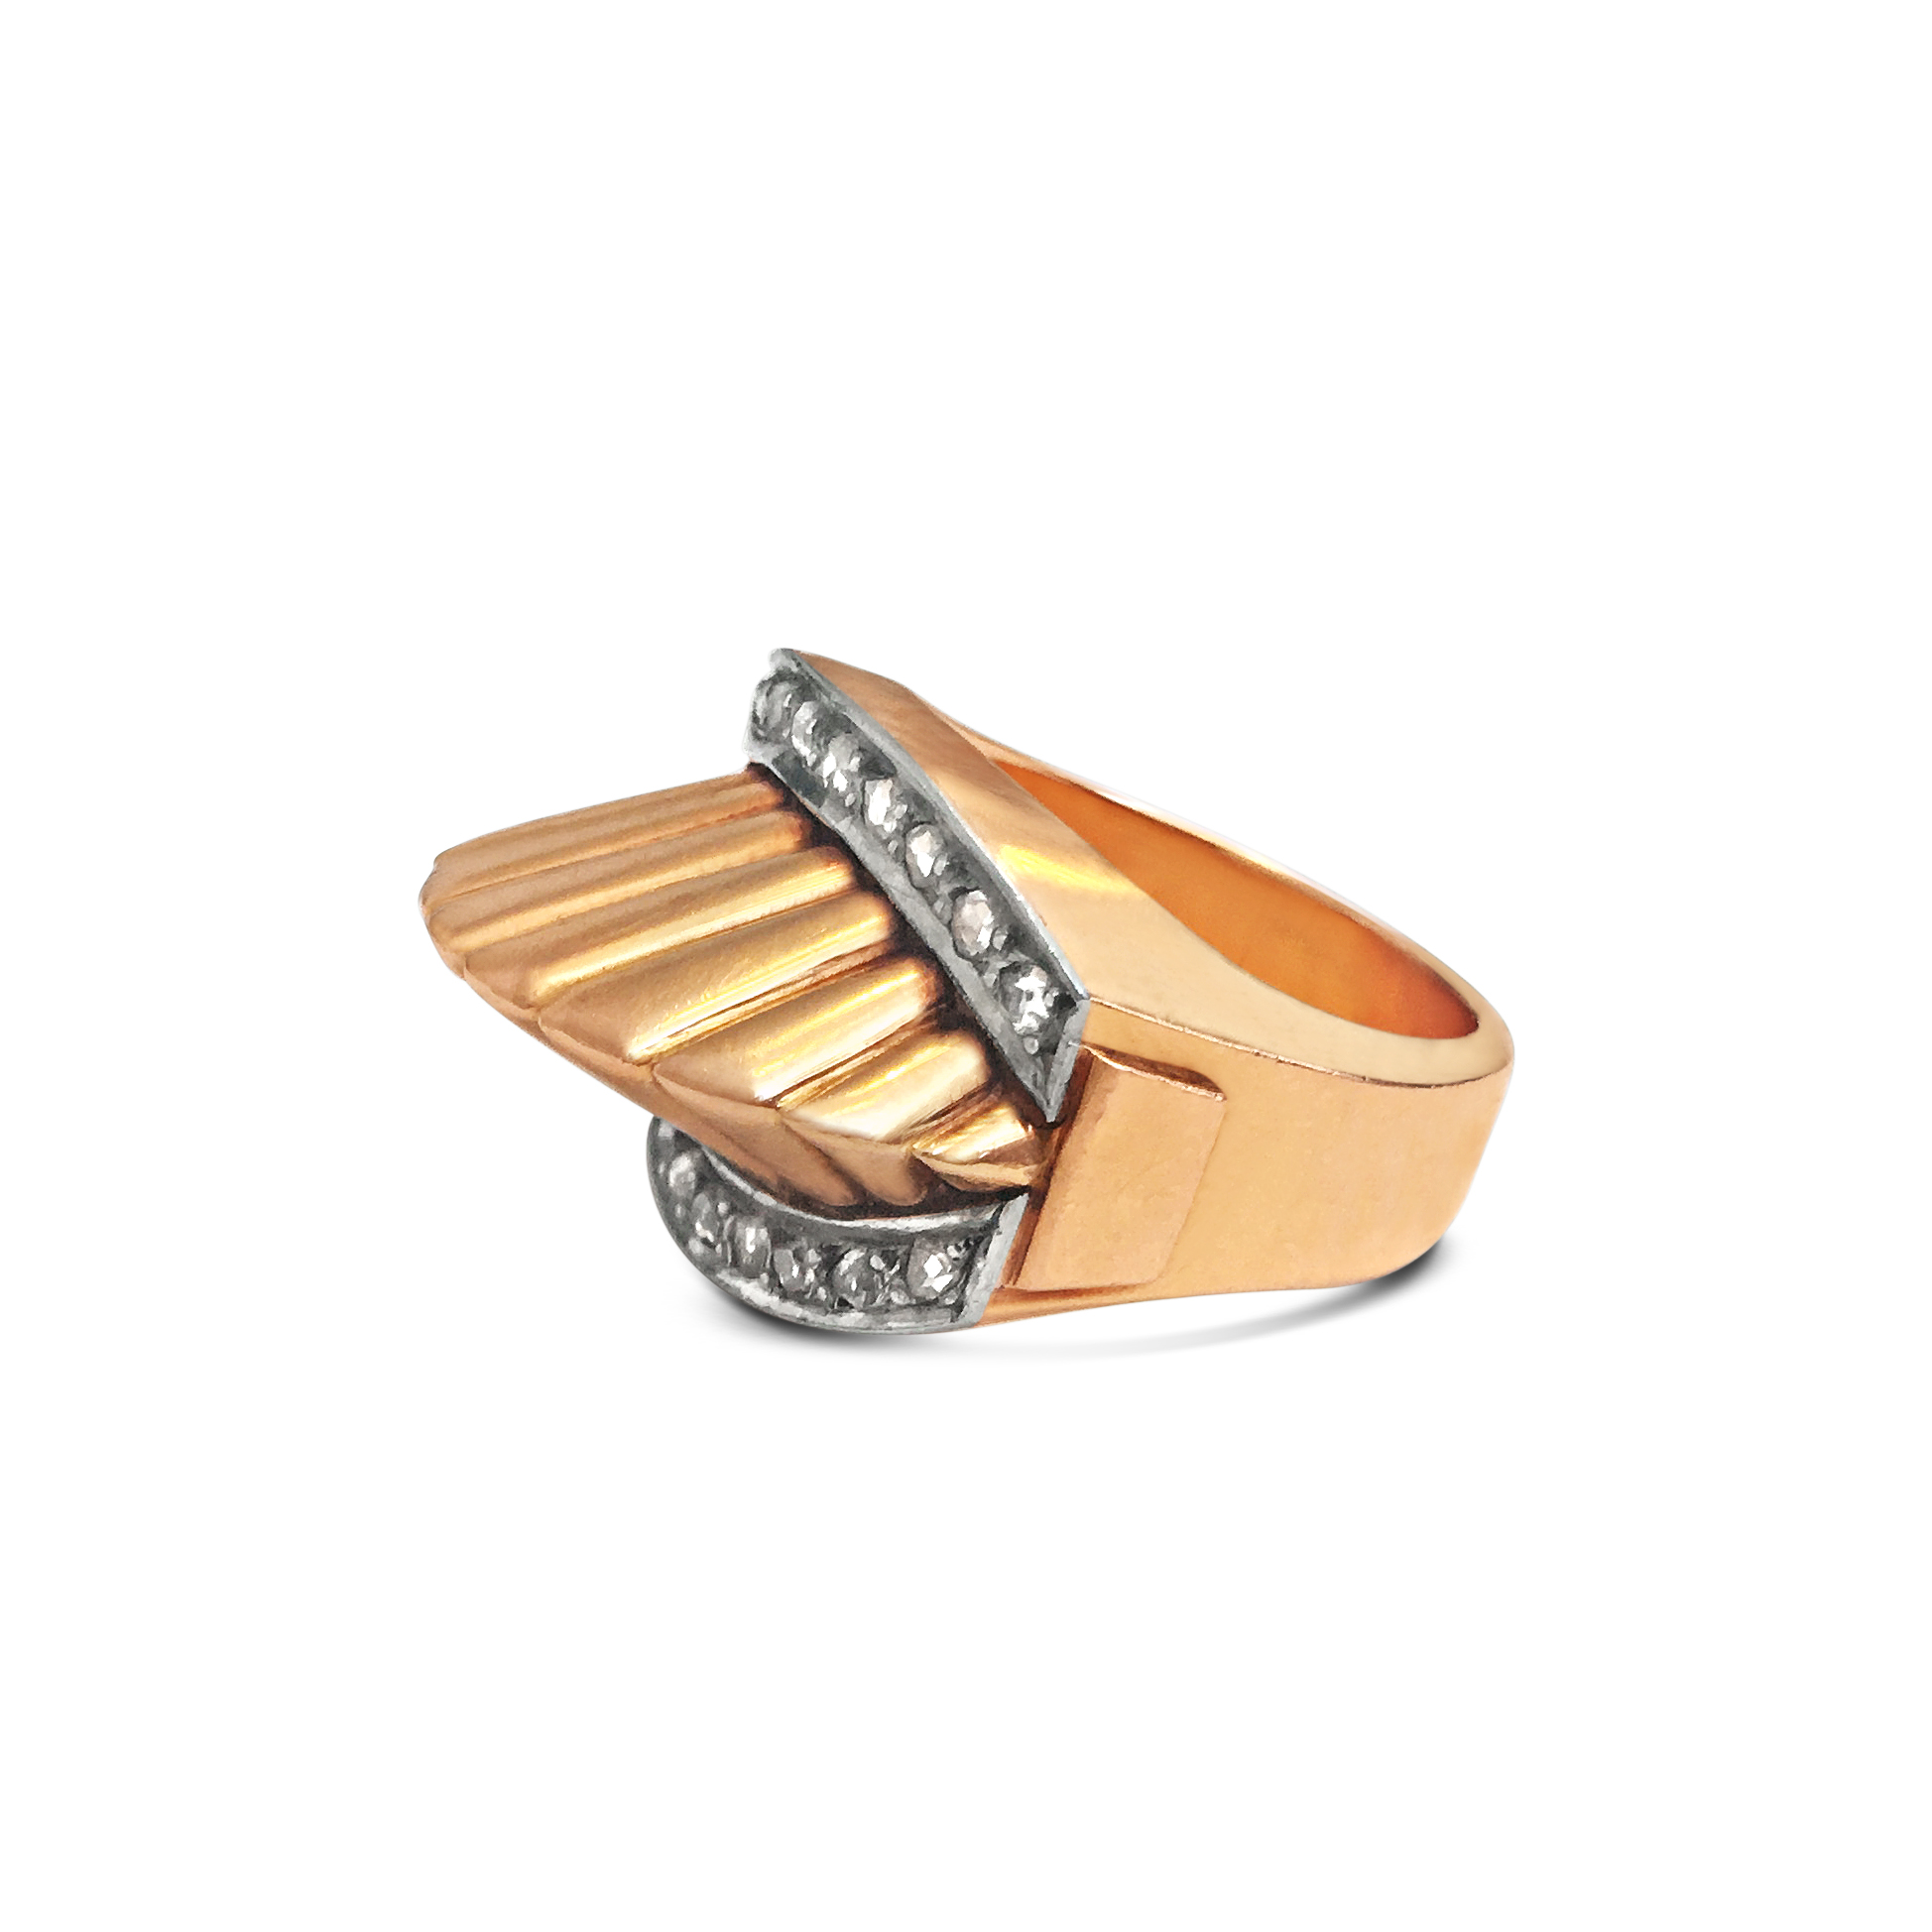 Antique-diamond-and-18ct-yellow-gold-40s-cocktail-ring-SN17-2-1.jpg